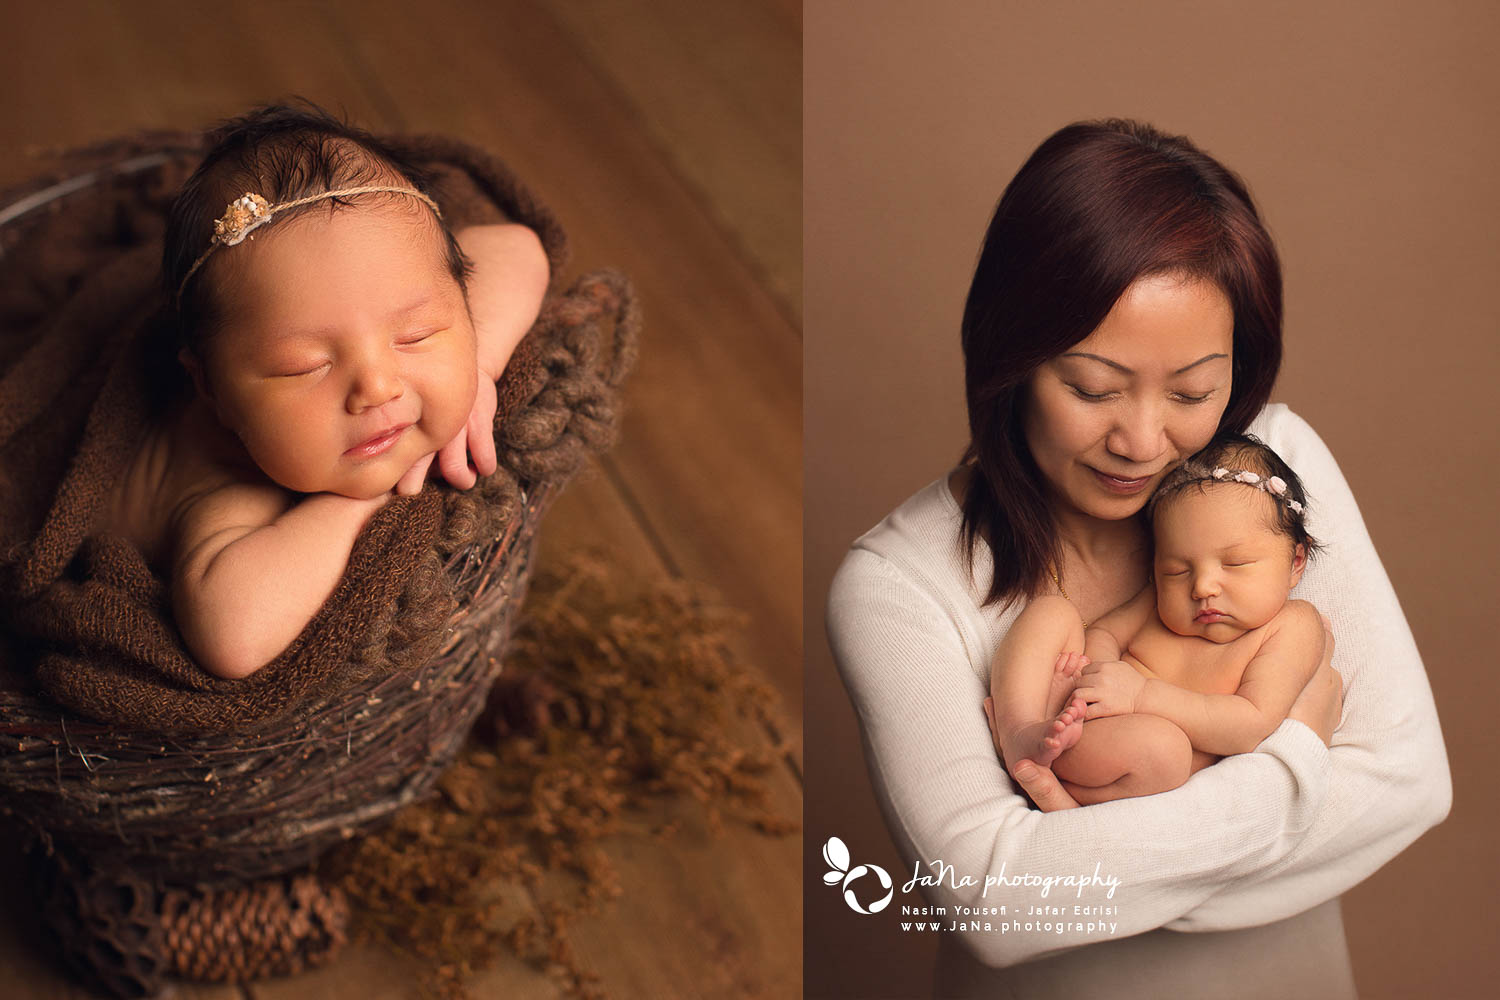 Maternity & Newborn photography Vancouver